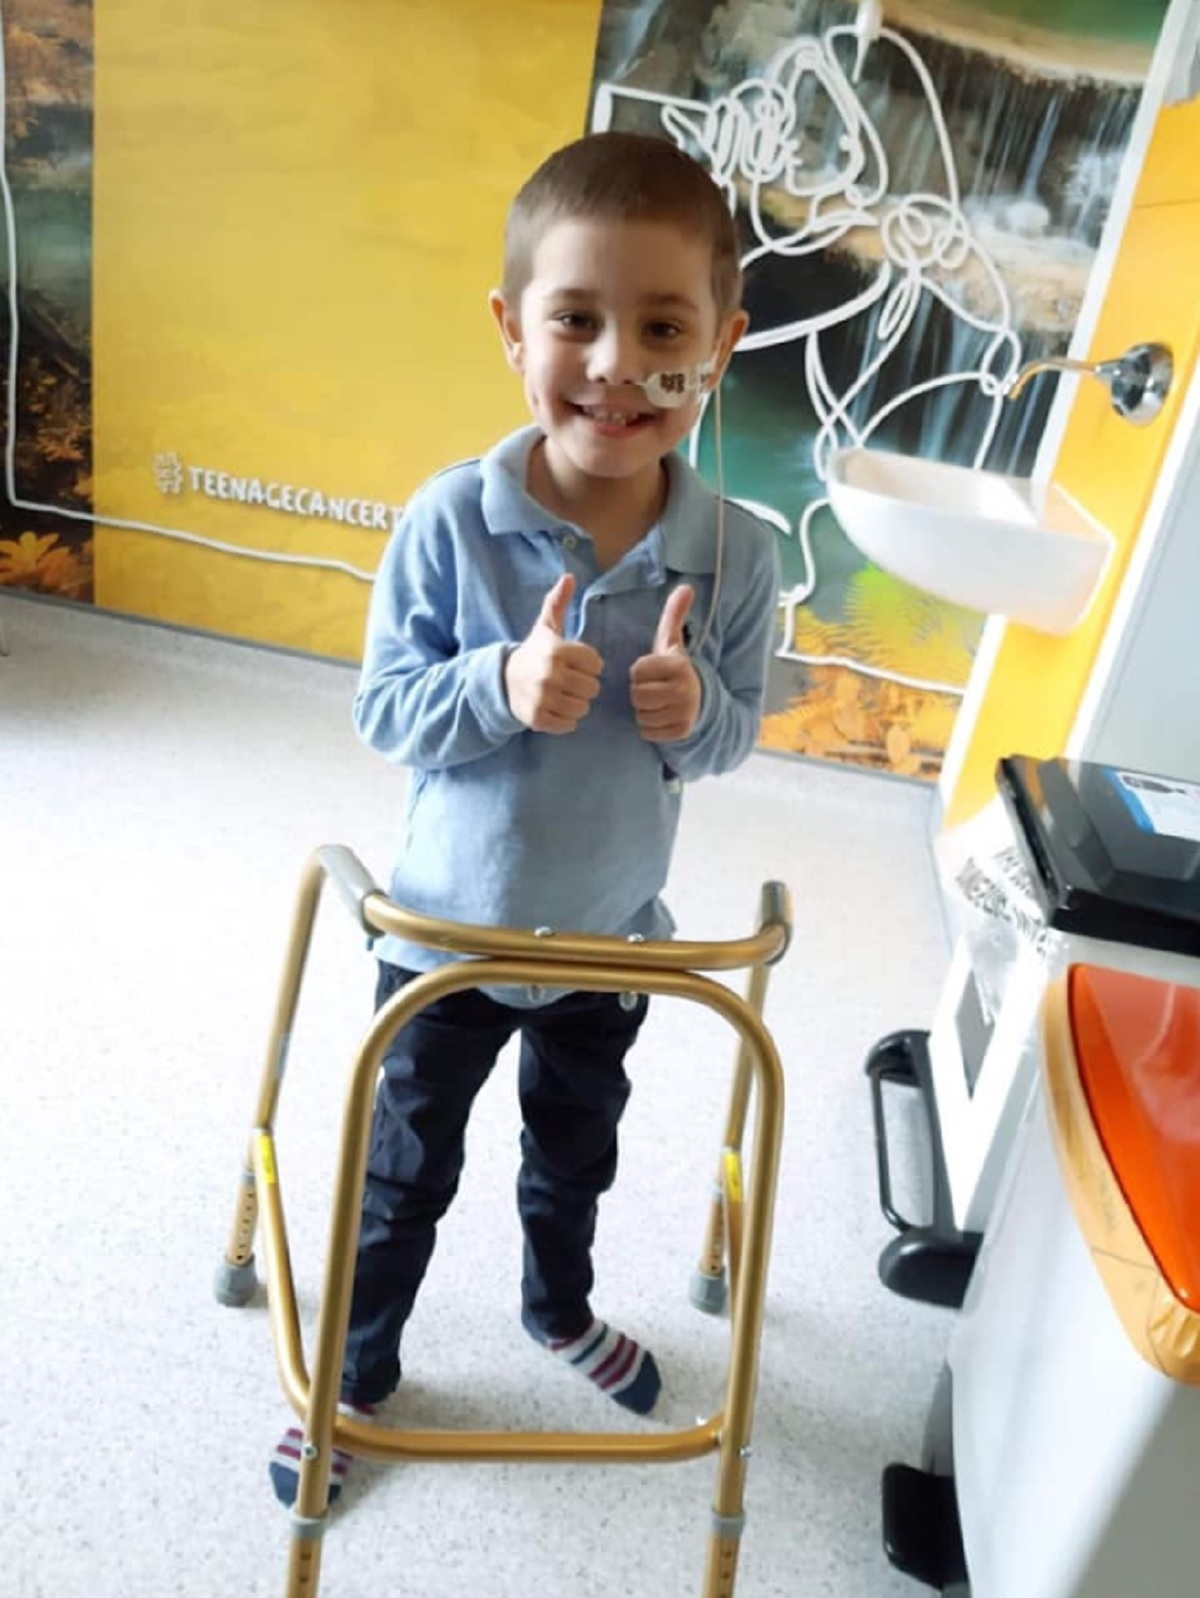 'We want Oscar's story to help other children too' - Saxelby-Lee family's new plea